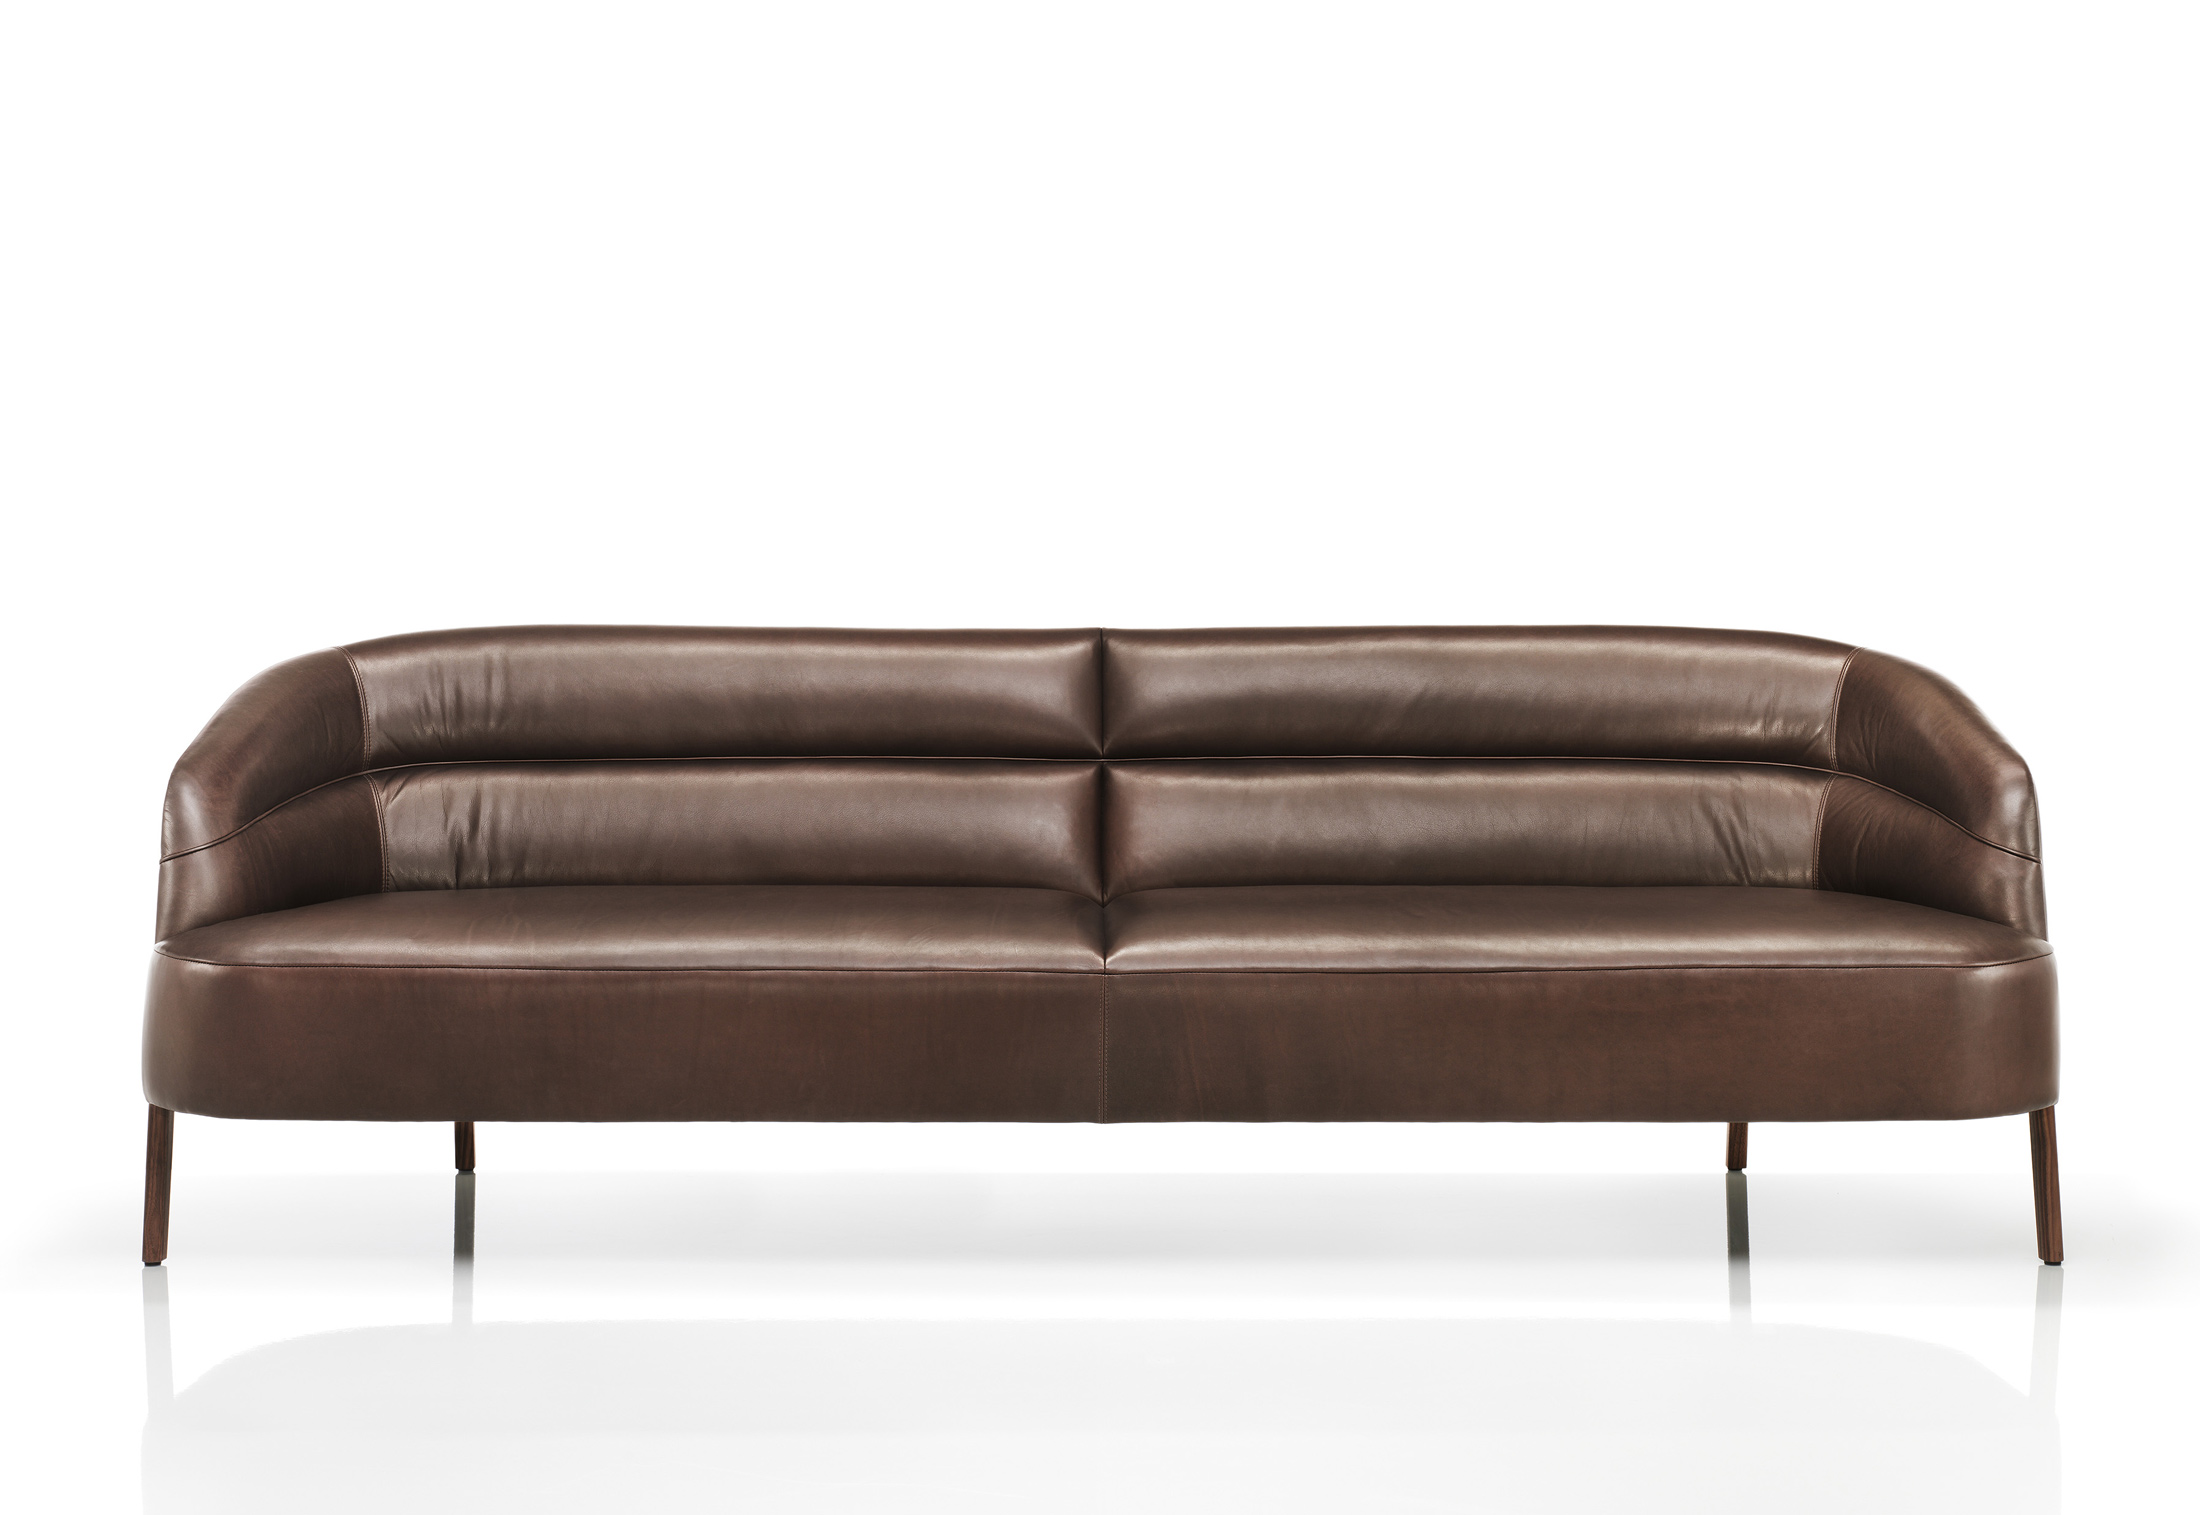 Odeon Sofa by Marco Dessí for Wittmann